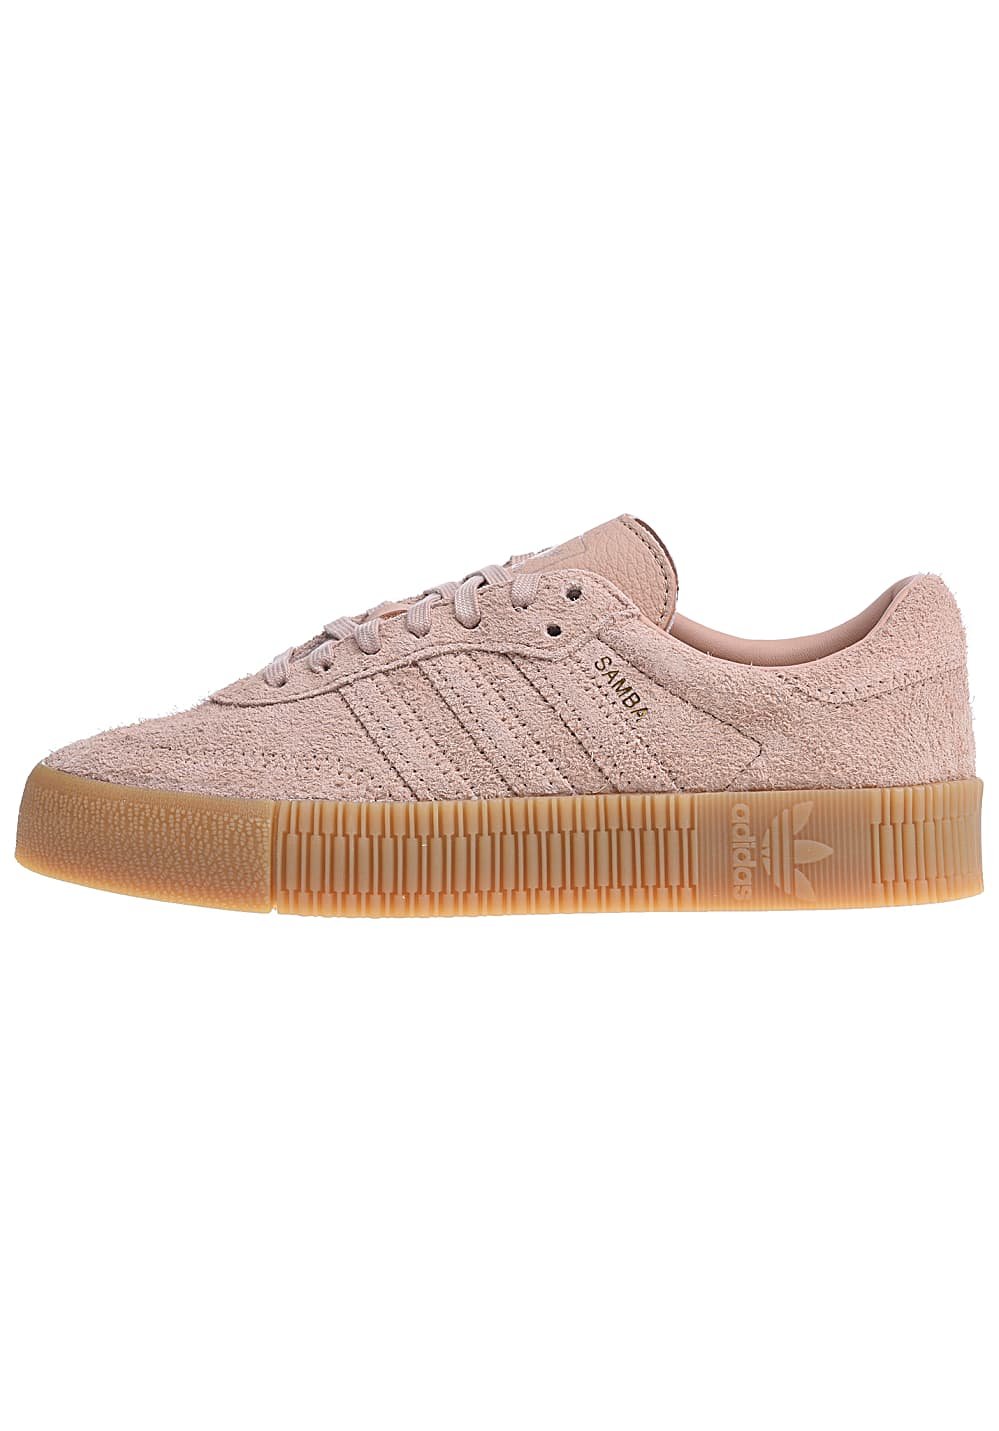 ADIDAS ORIGINALS Samba Rose - Baskets pour Femme - Rose